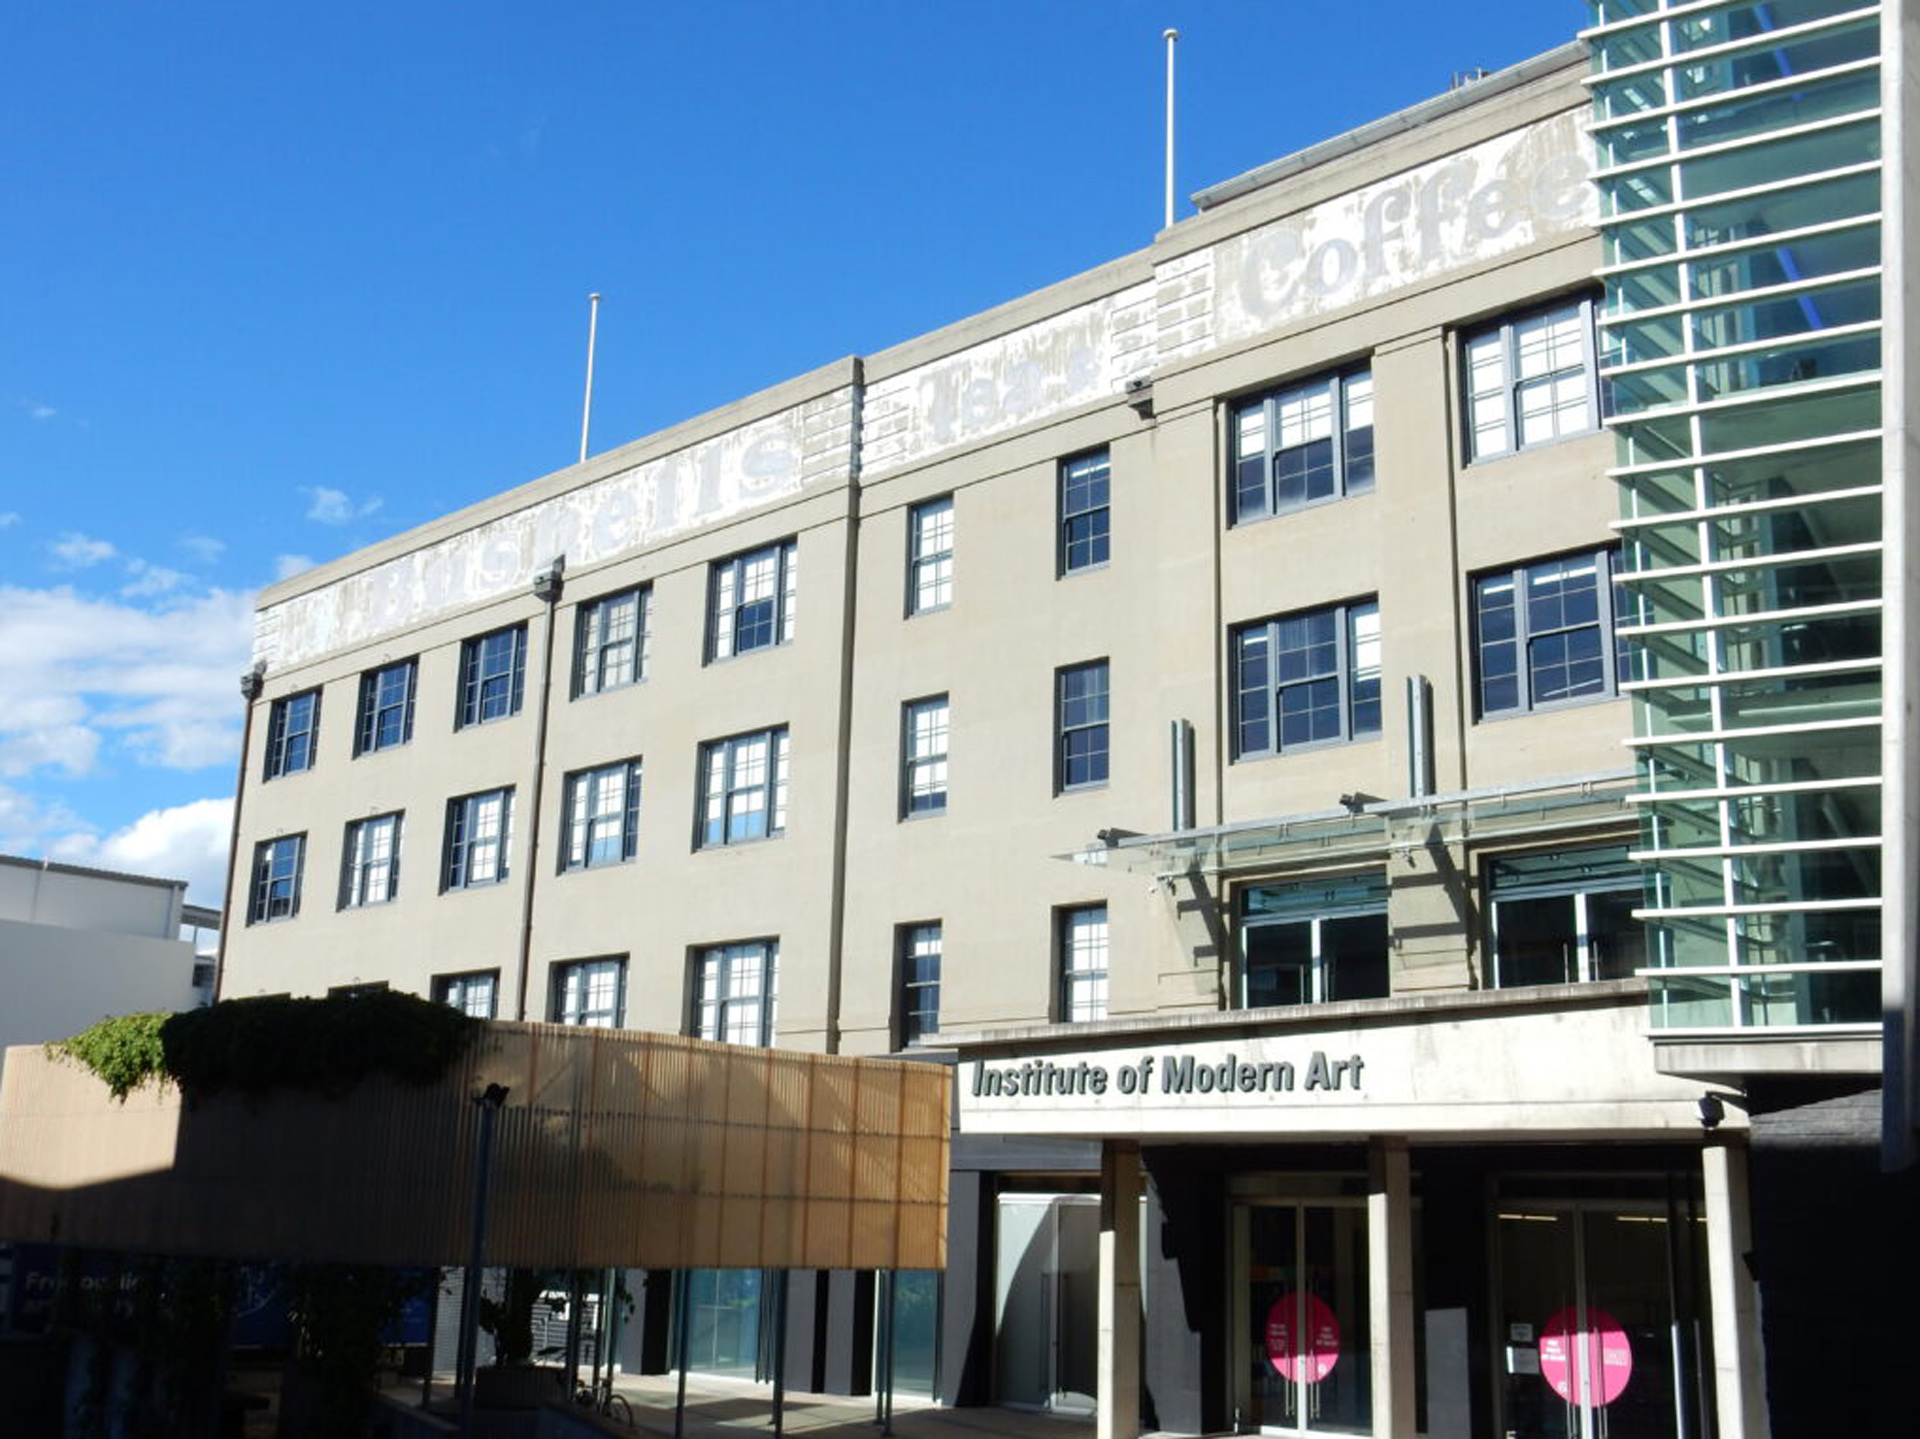 Institute of Modern Art building Fortitude Valley